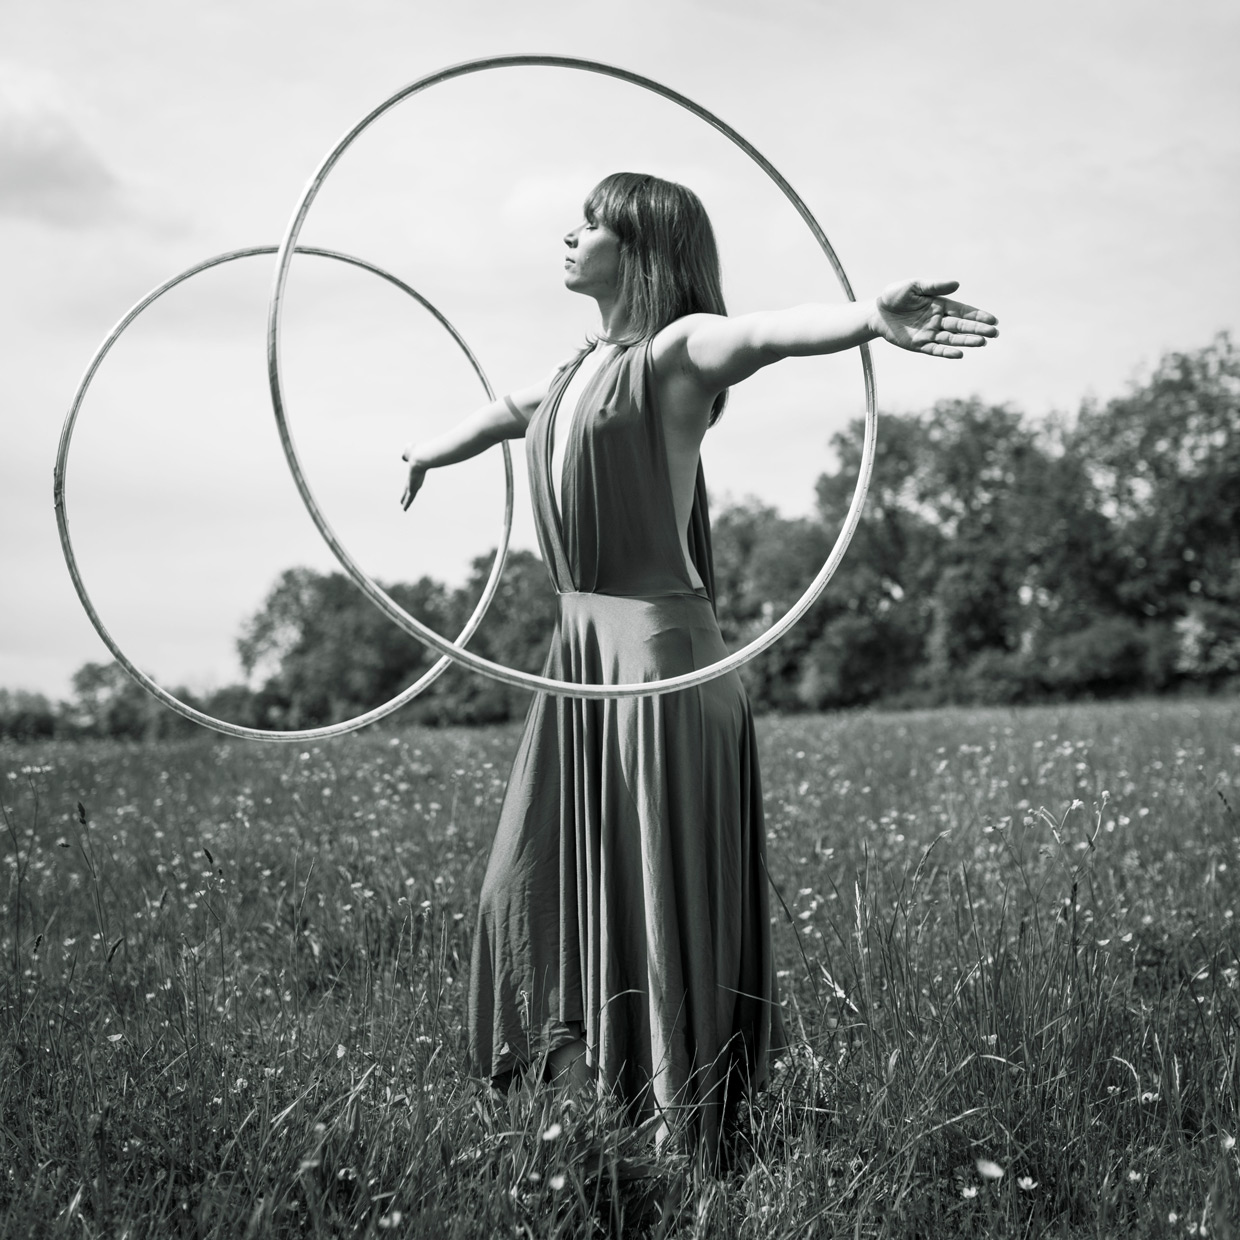 hjorthmedh-playing-with-hoops-6